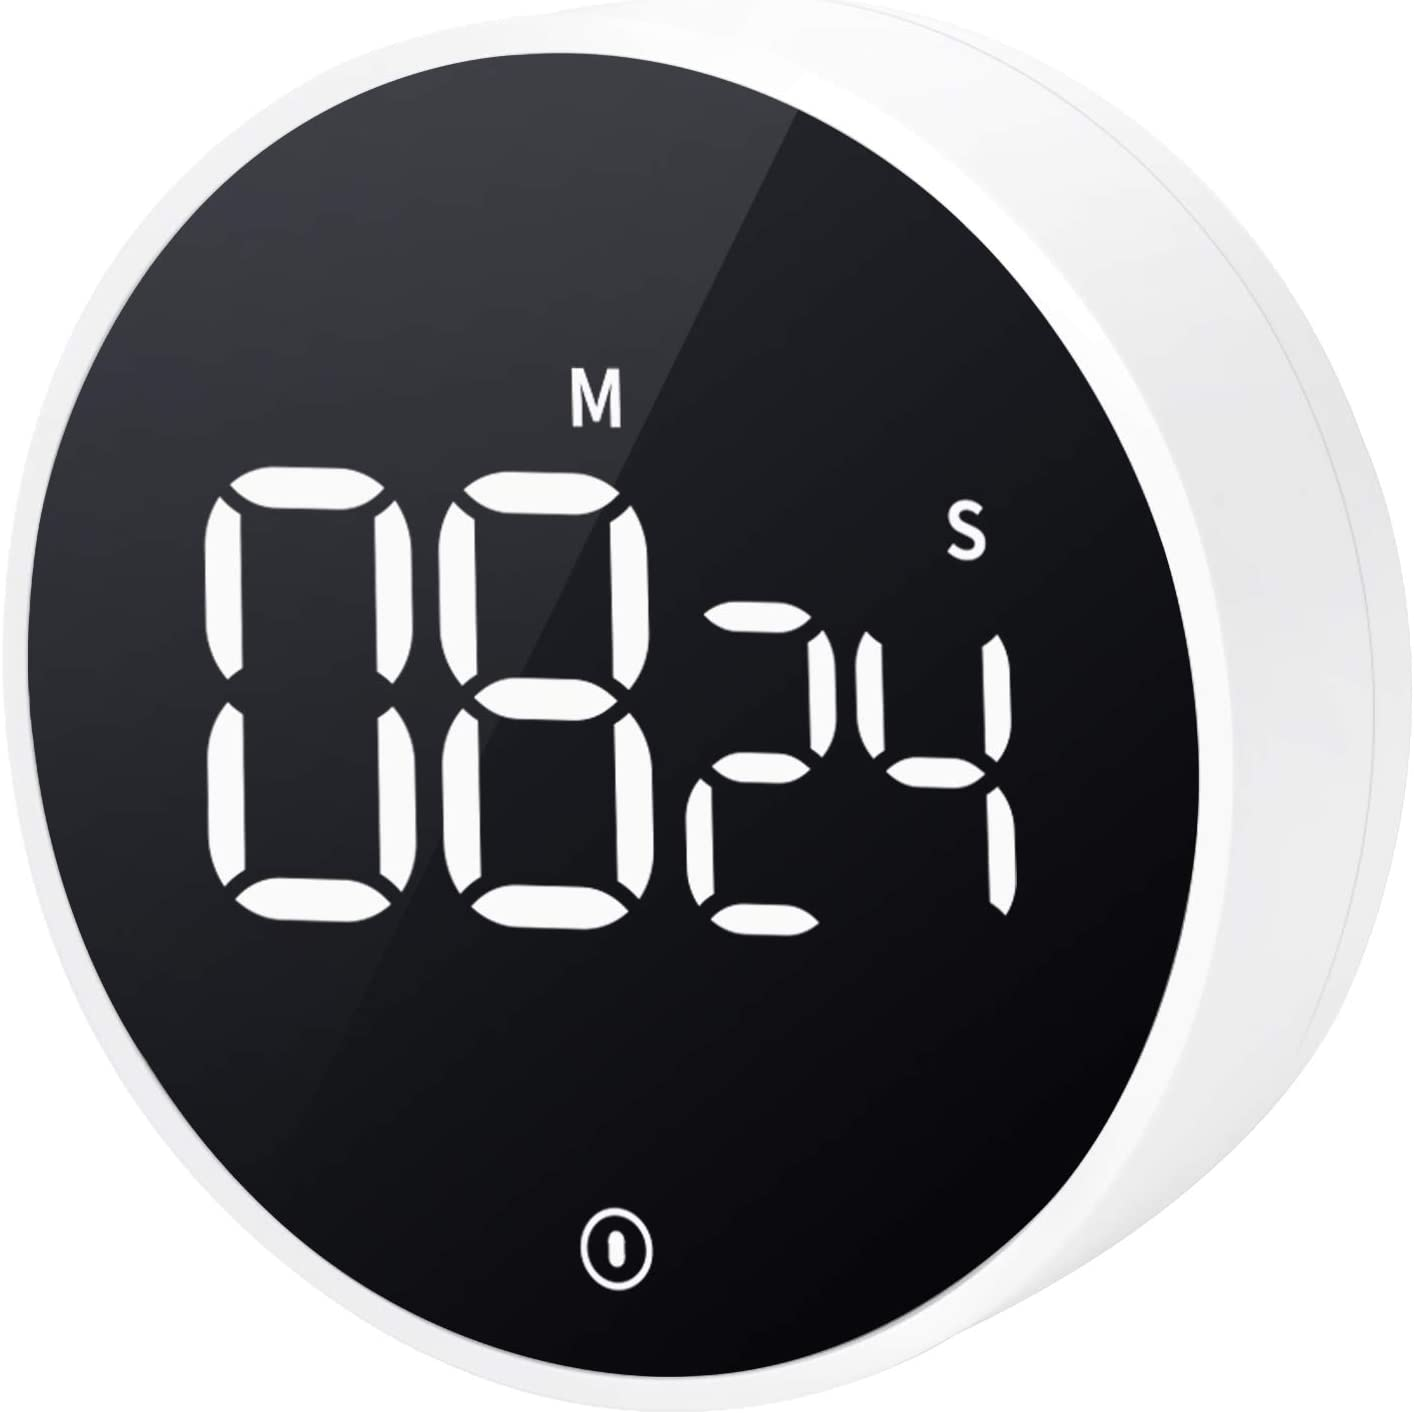 VOCOO Digital Kitchen Timer: Magnetic Countdown/Count Up Timer with Large LED Display Volume Adjustable, Easy to Use for Cooking Kids and Seniors